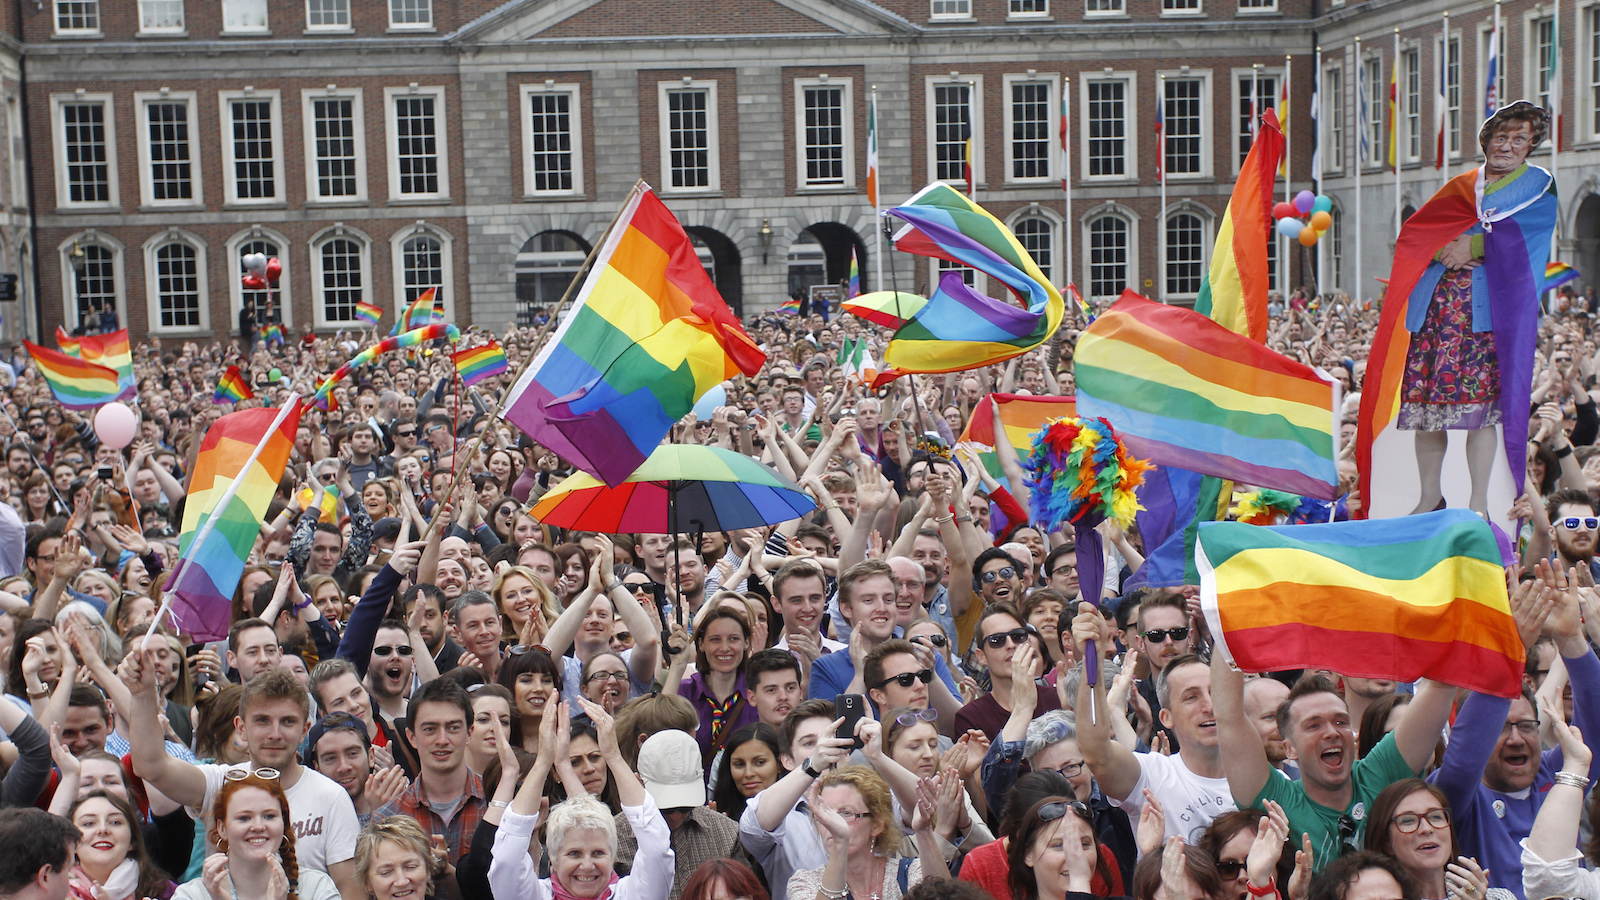 """Yes supporters react at Dublin castle, Ireland, Saturday, May 23, 2015. Ireland has voted resoundingly to legalize gay marriage in the world's first national vote on the issue, leaders on both sides of the Irish referendum declared Saturday even as official ballot counting continued. Senior figures from the """"no"""" campaign, who sought to prevent Ireland's constitution from being amended to permit same-sex marriages, say the only question is how large the """"yes"""" side's margin of victory will be from Friday's vote. ()"""